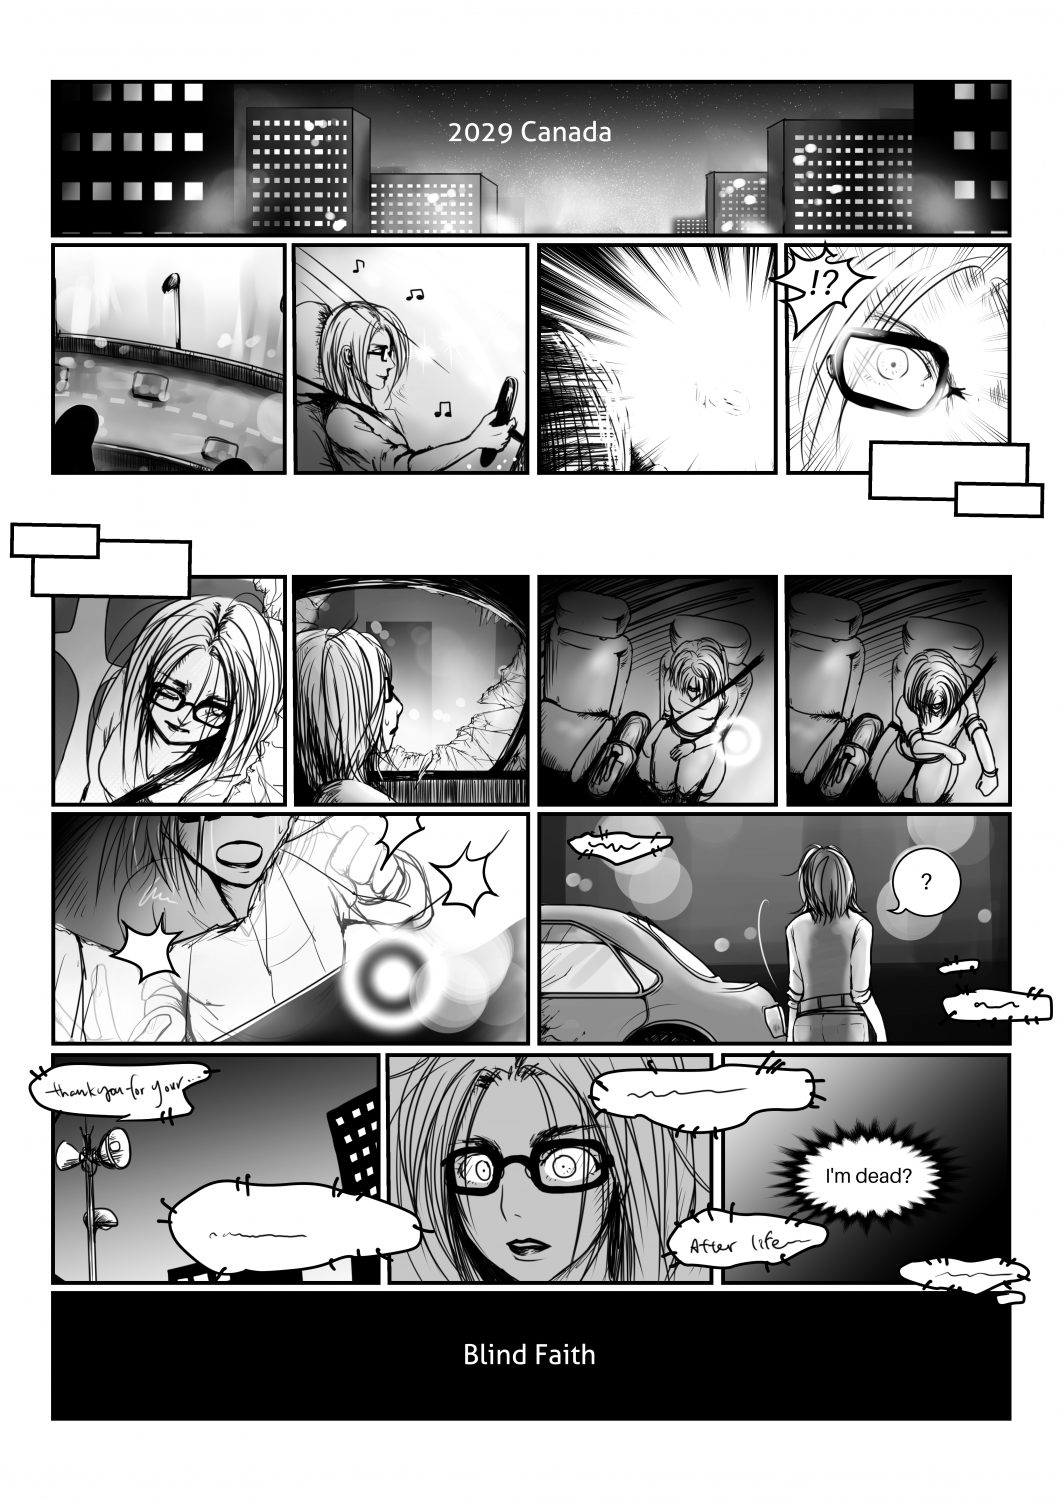 Comic teaser for Blind Faith. A woman driving in Canada gtting into a car crash and coming to the realisation she died.